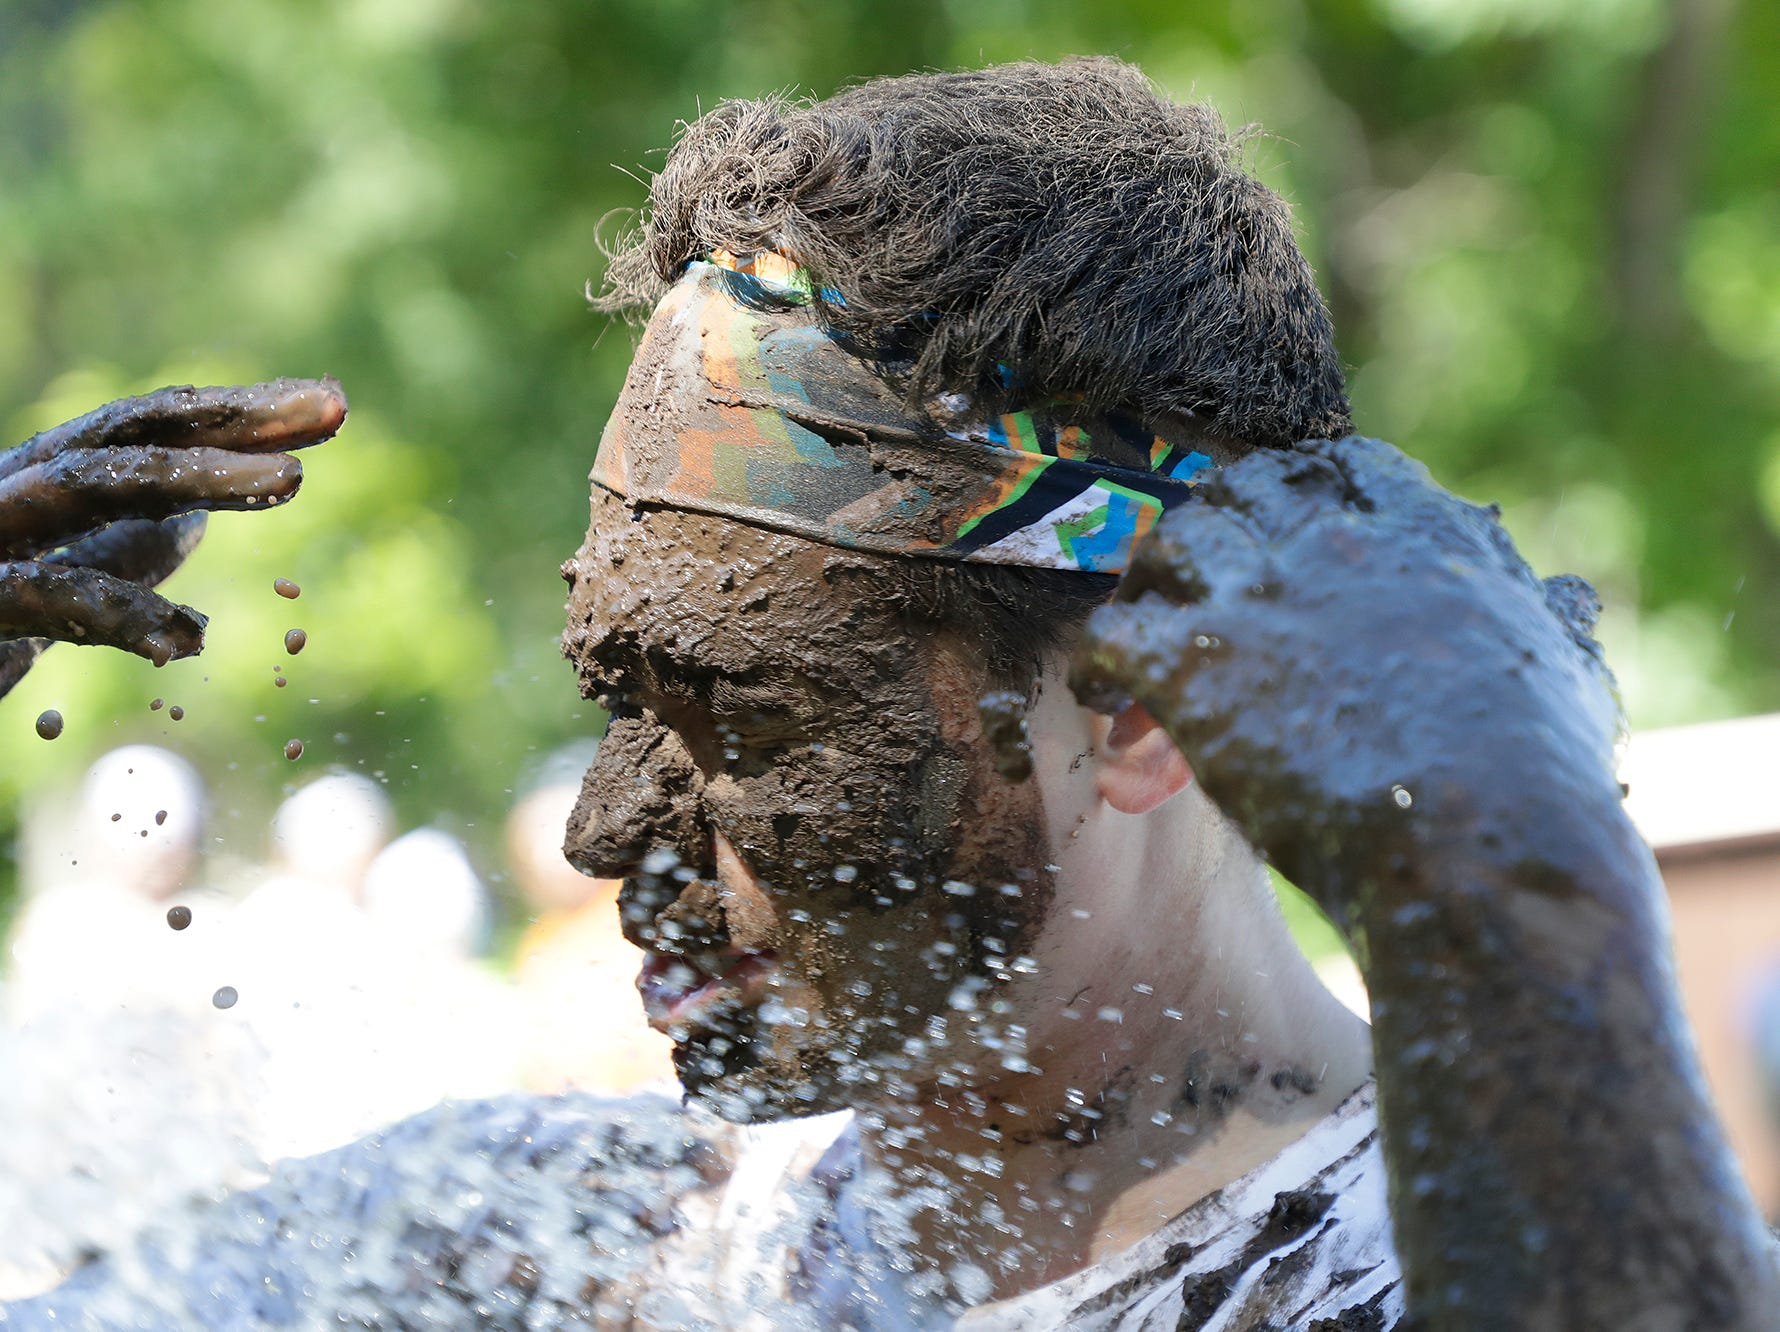 The first annual Crazy Mud Mayhem Obstacle course run at Triangle Sports Park and Baird Creek park Saturday, June 23, 2018 in Green Bay, Wis. Nate Stewart of Green Bay gets hosed off after immersing himself in the experience.